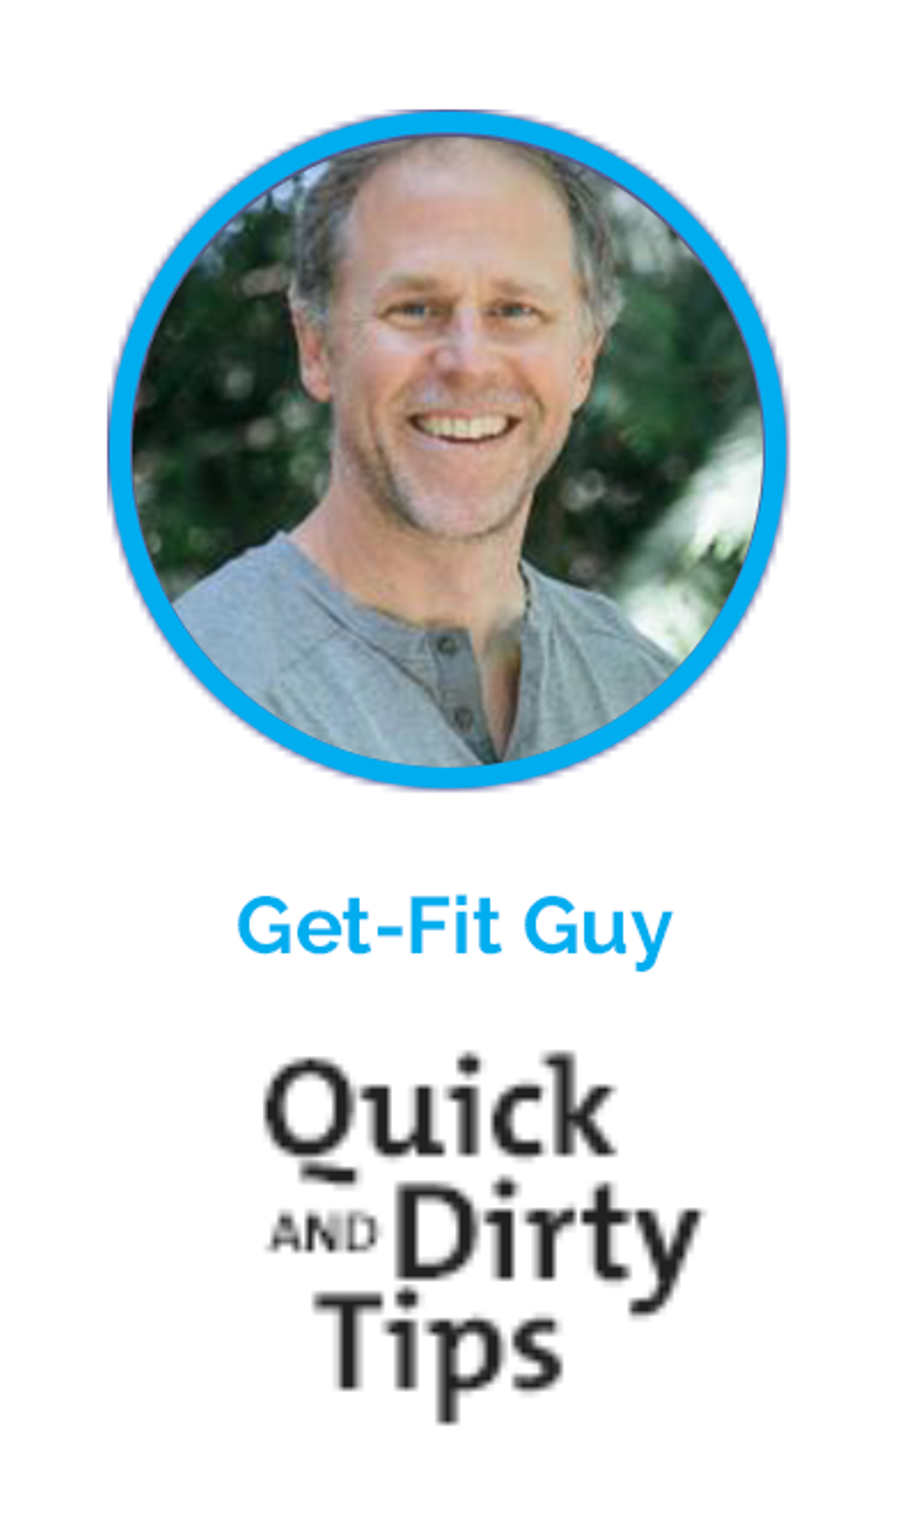 getfitguy.png